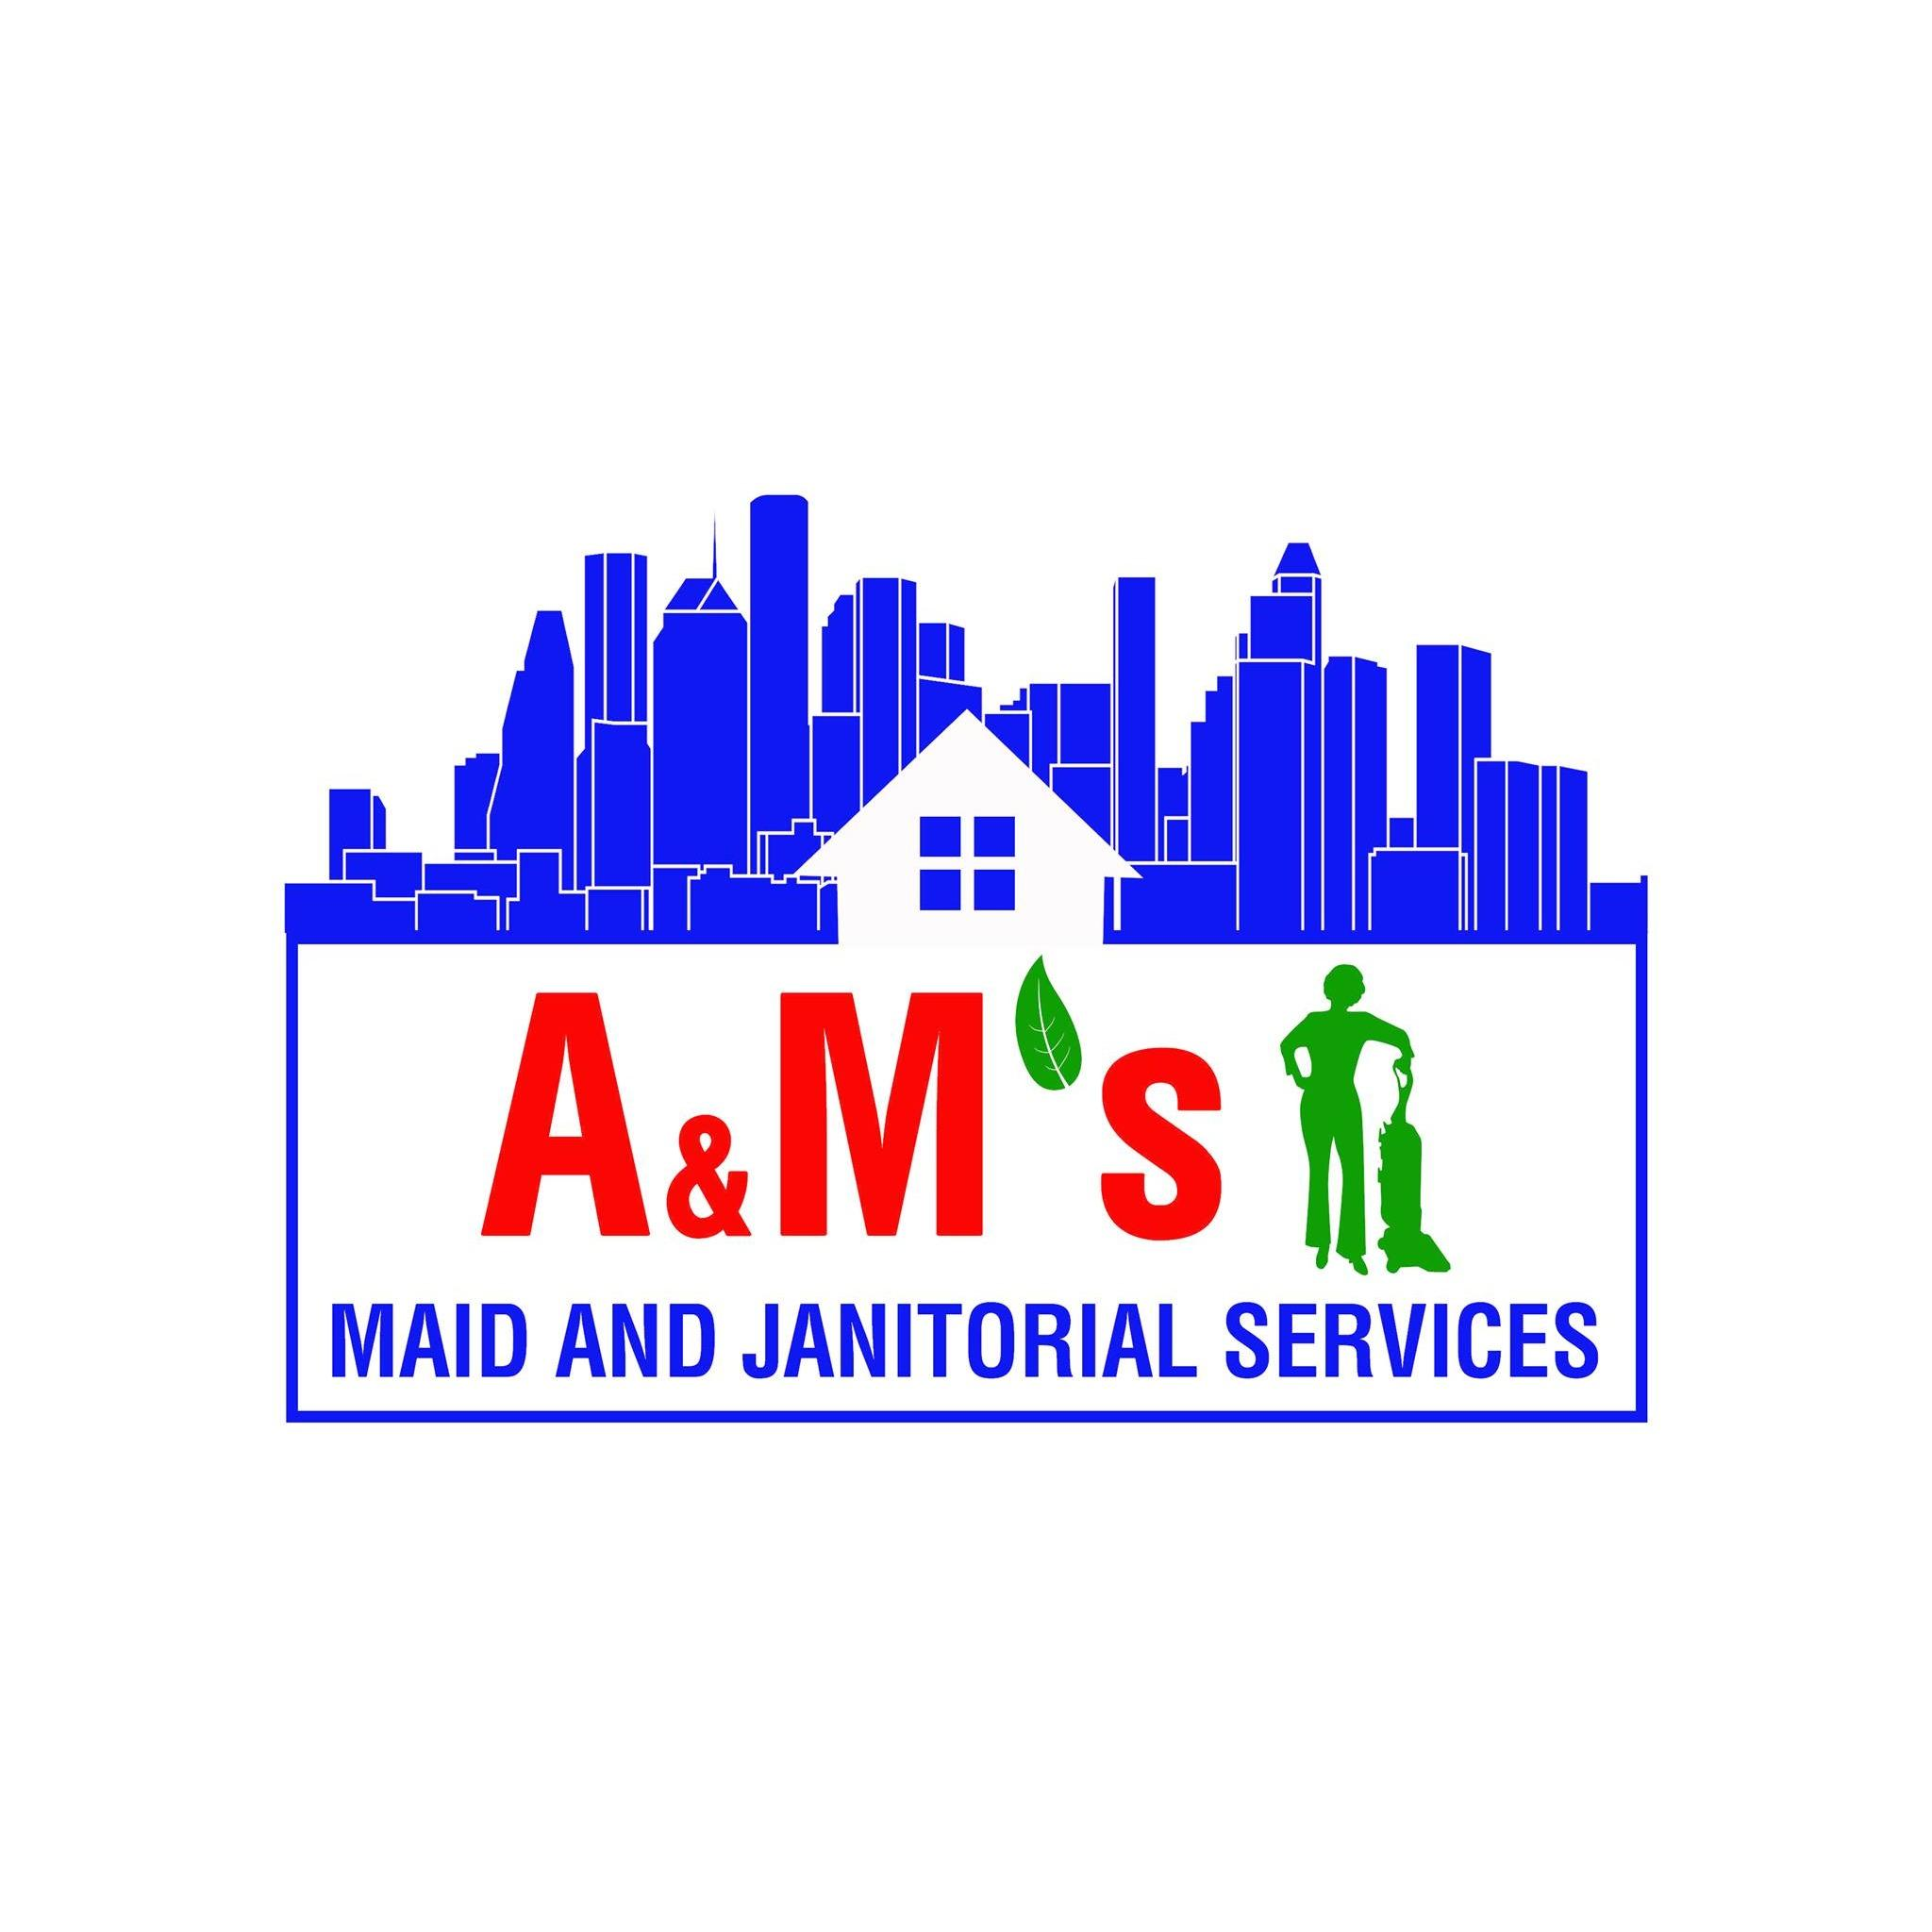 A & M's Maid & Janitorial Services